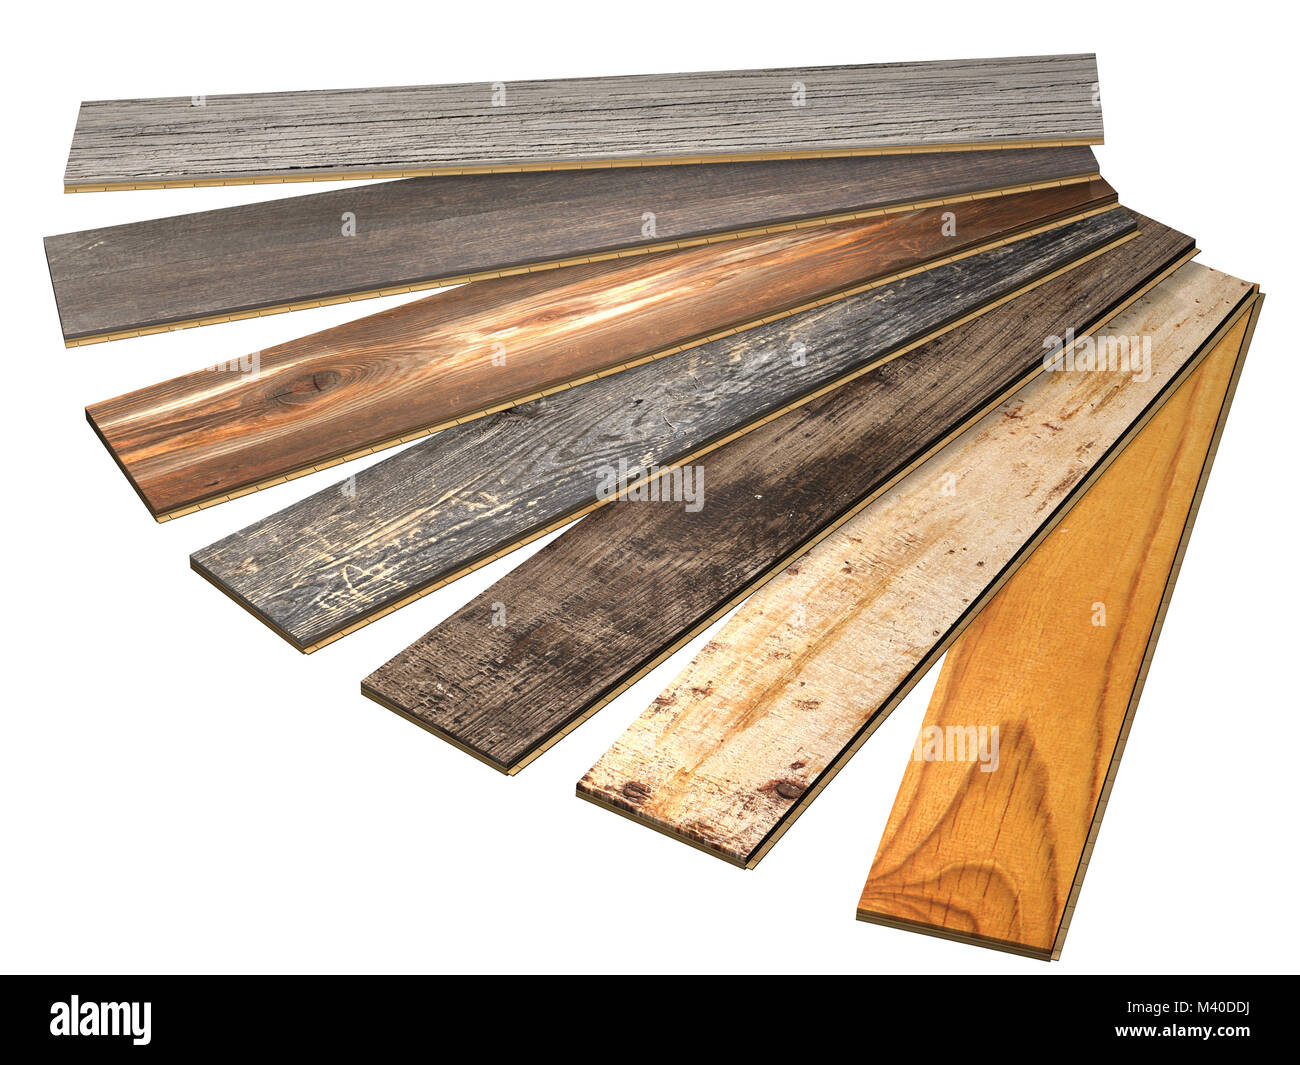 New planks of oak parquet of different colors with rustic texture. Isolated on white background. 3d render - Stock Image